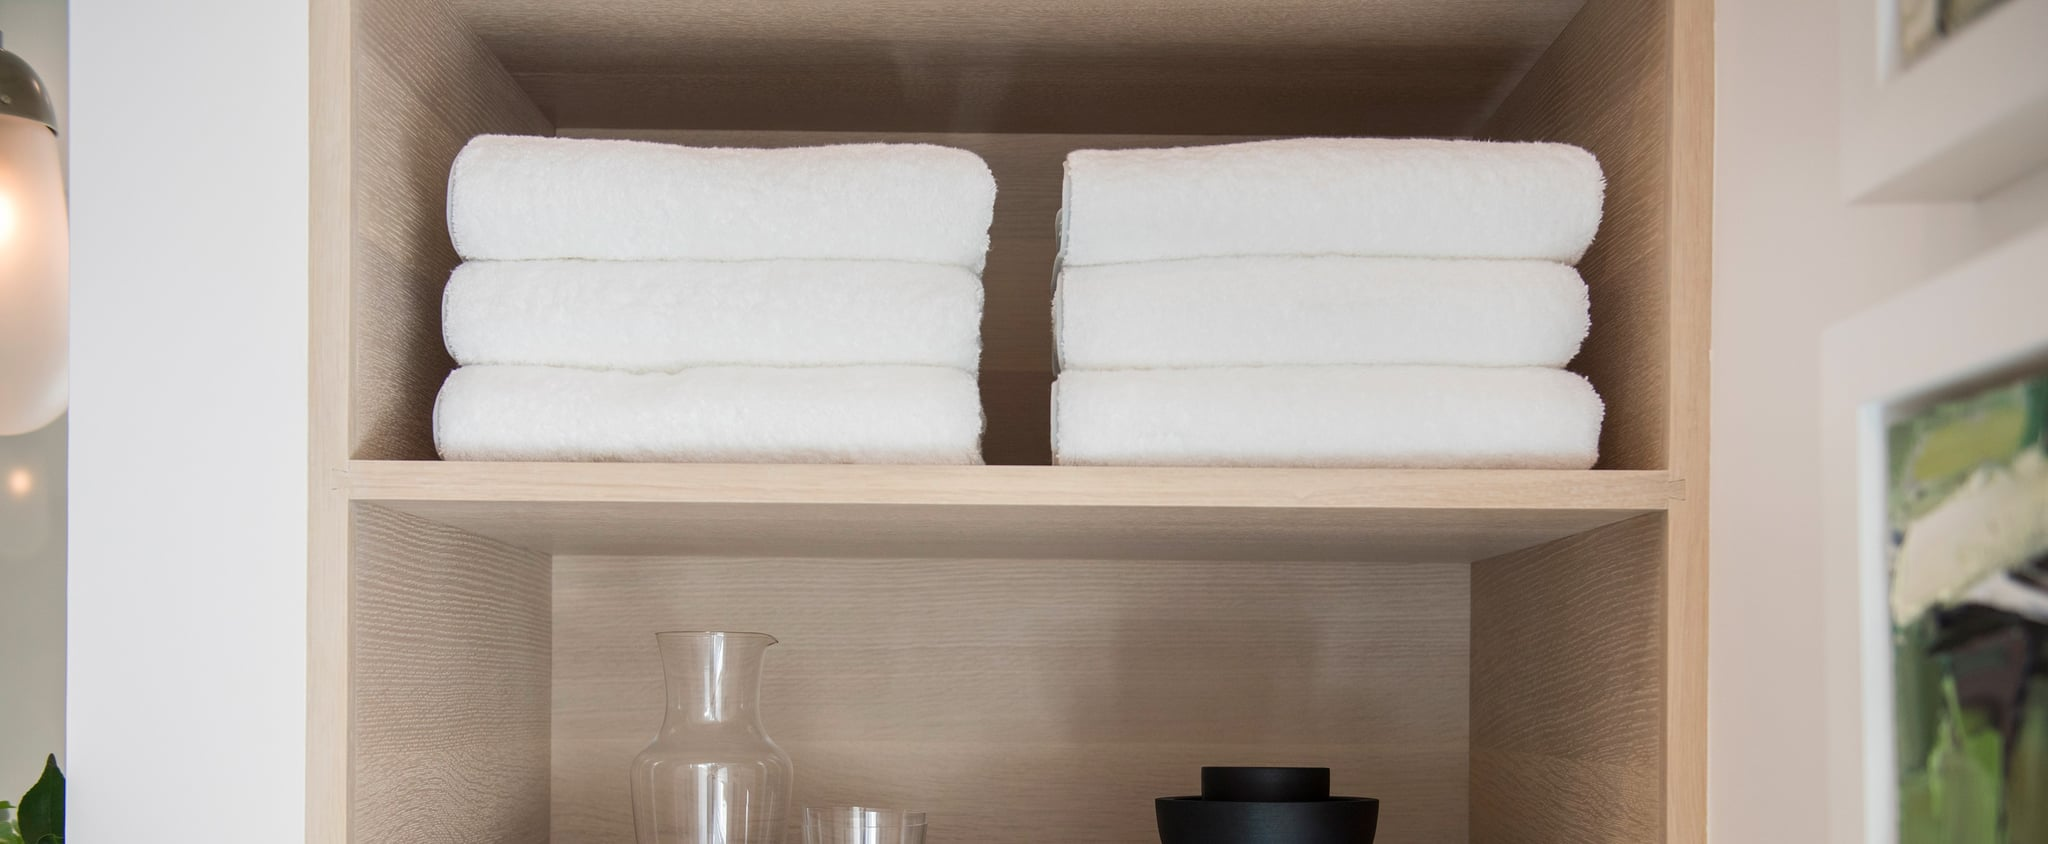 What to Use to Make Towels Smell Better